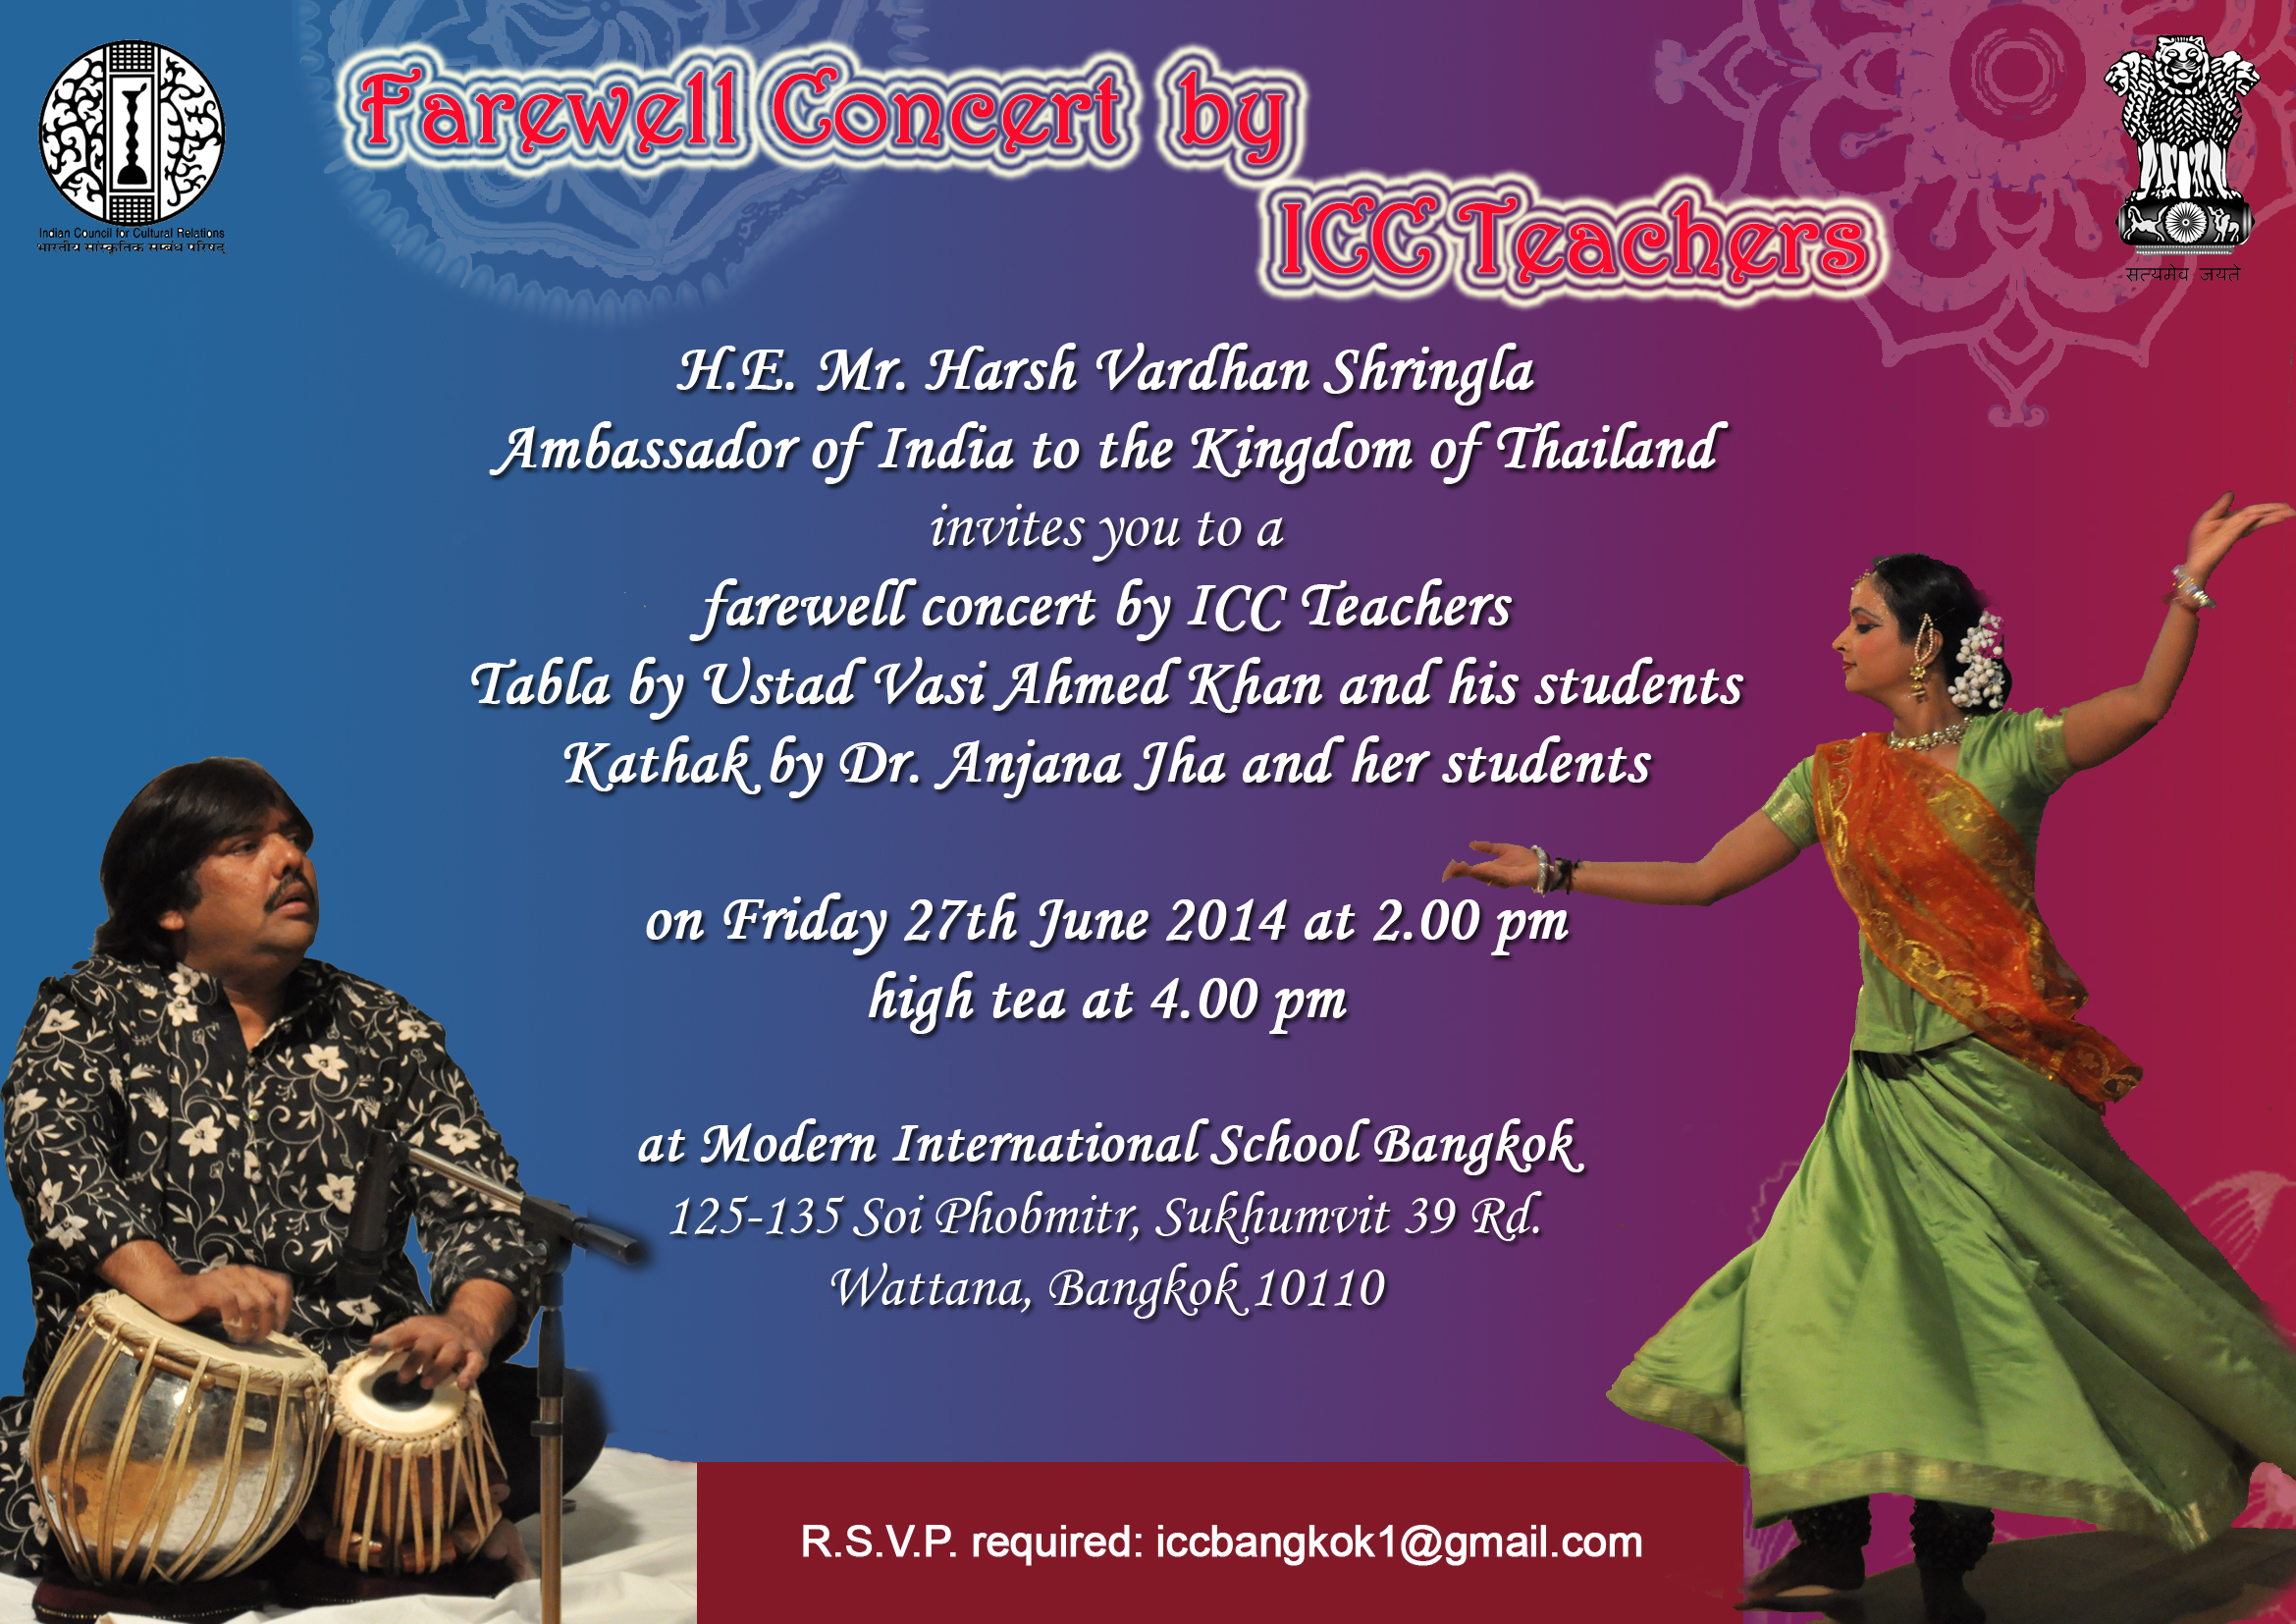 Invitation for Farewell Concert by ICC Teachers on Friday 27th June